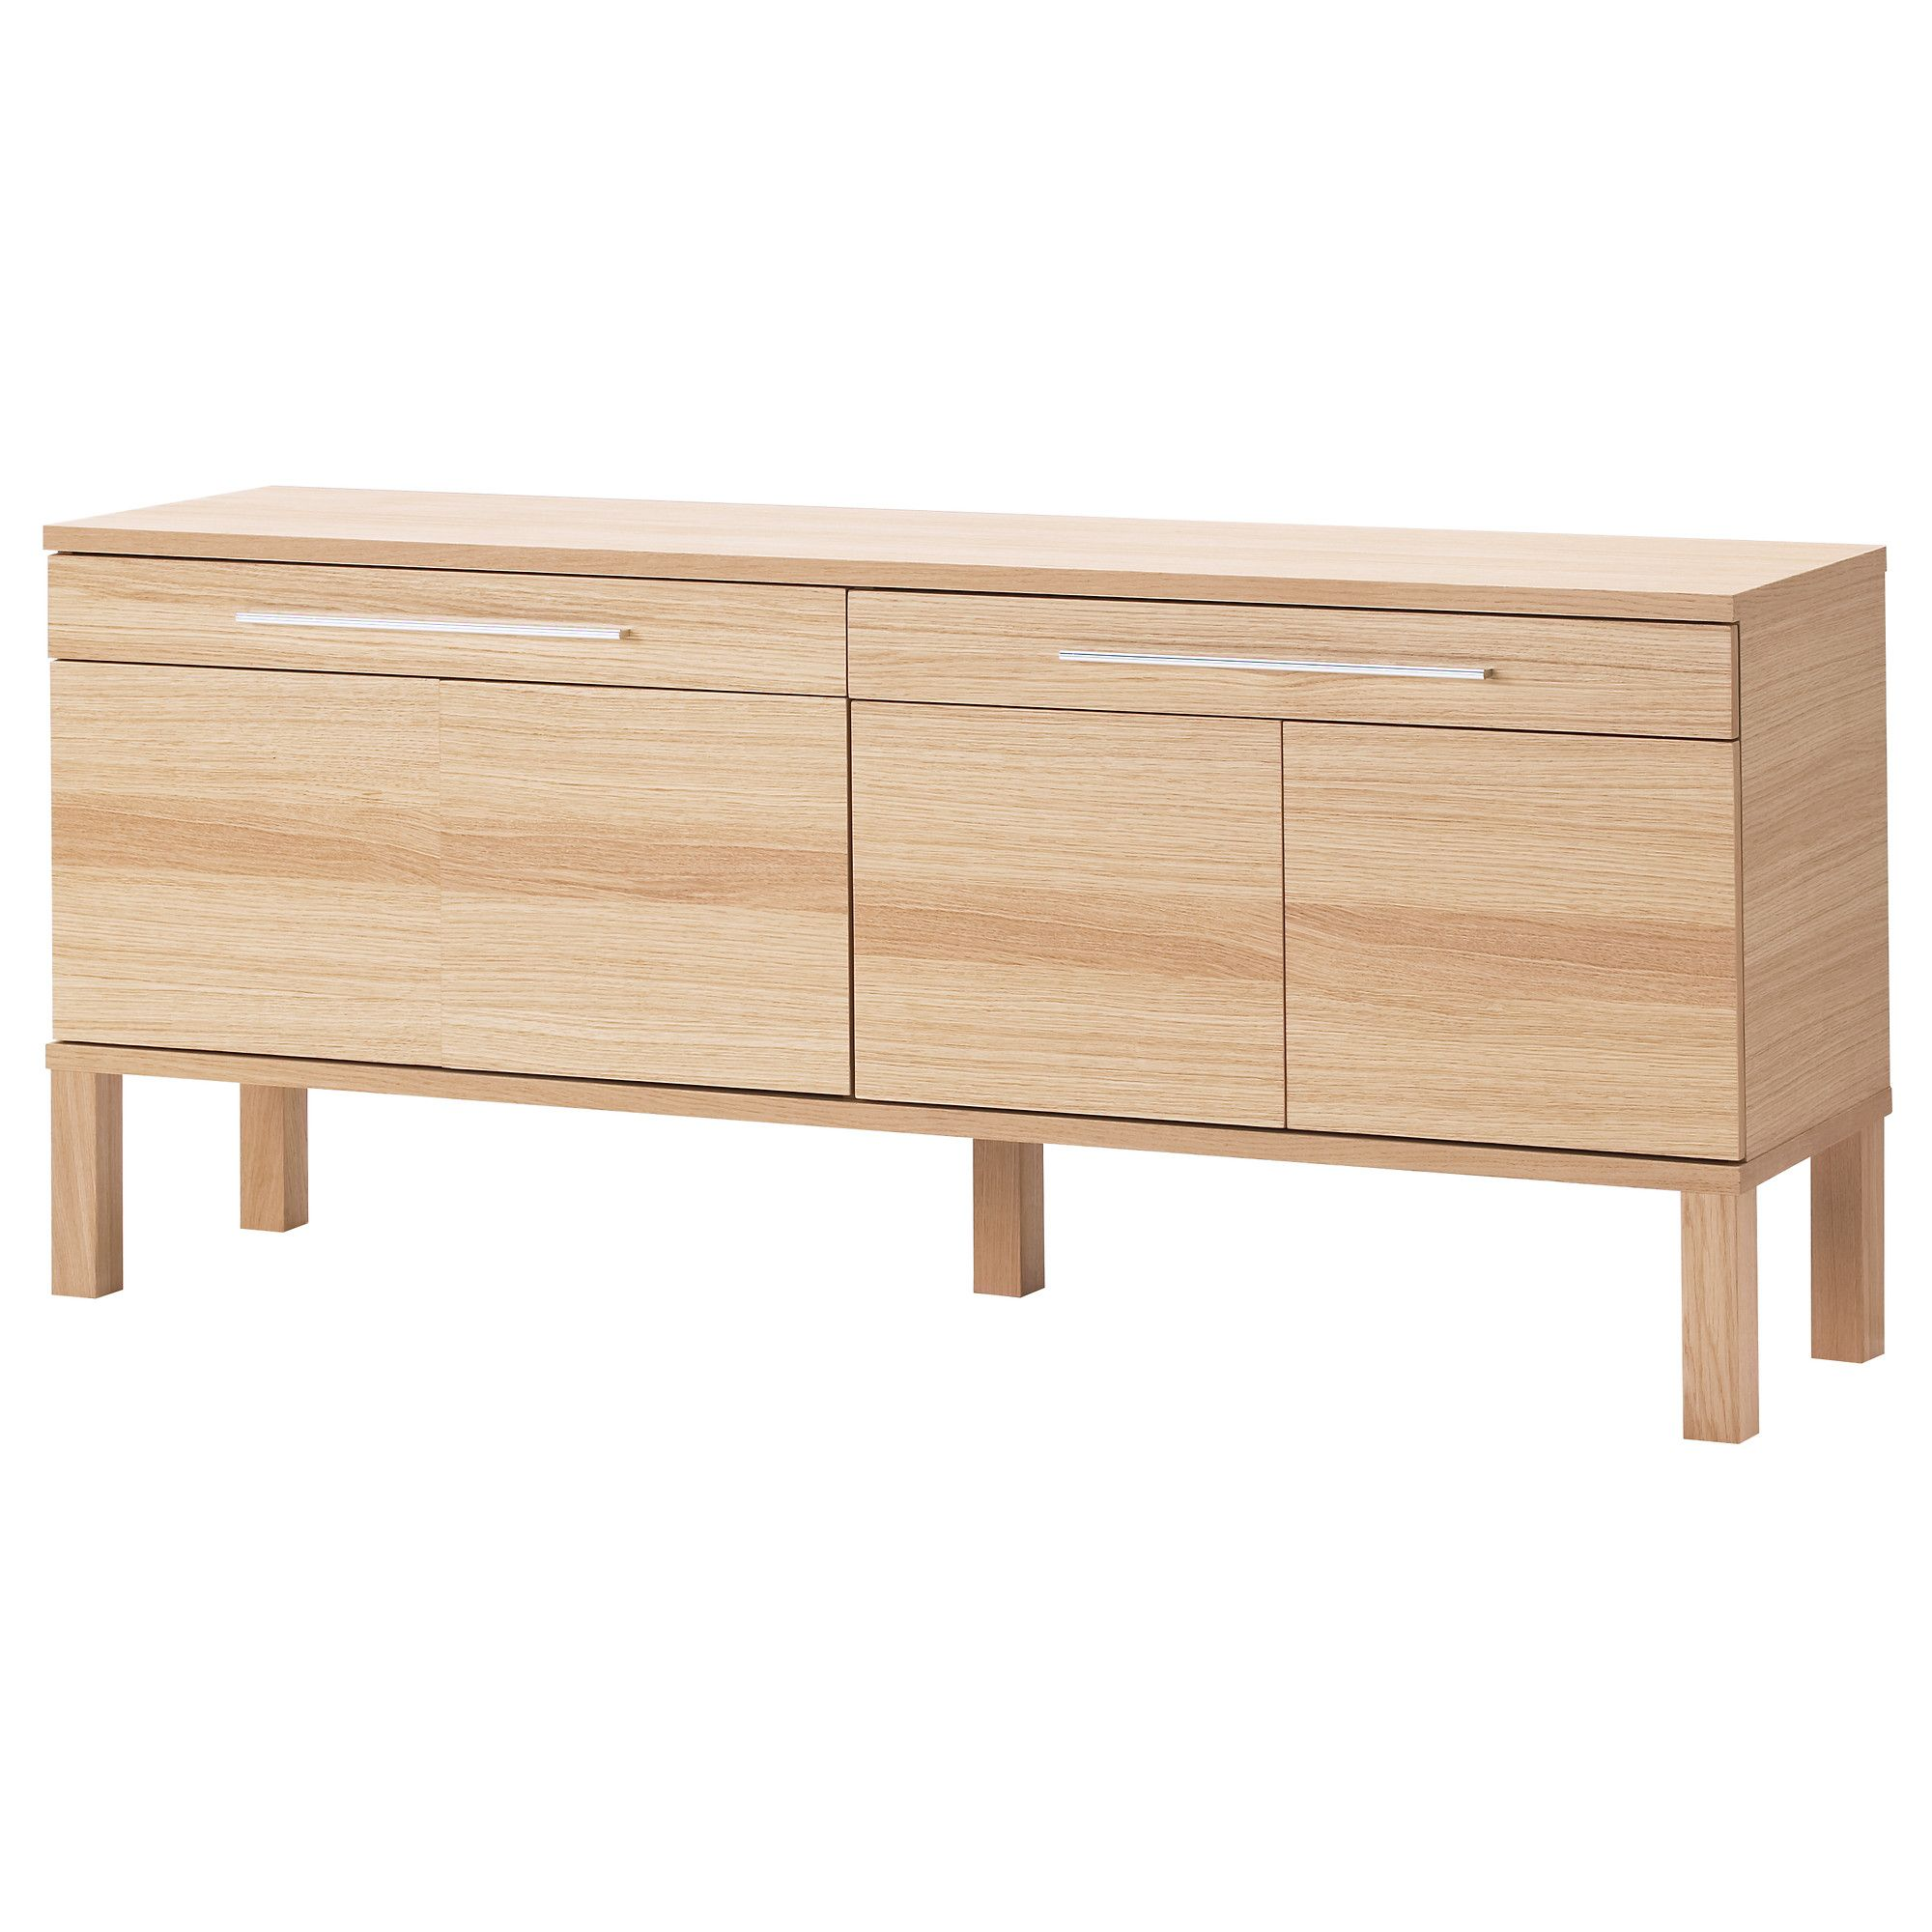 Buffet table furniture ikea -  269 Bjursta Sideboard Oak Veneer Ikea